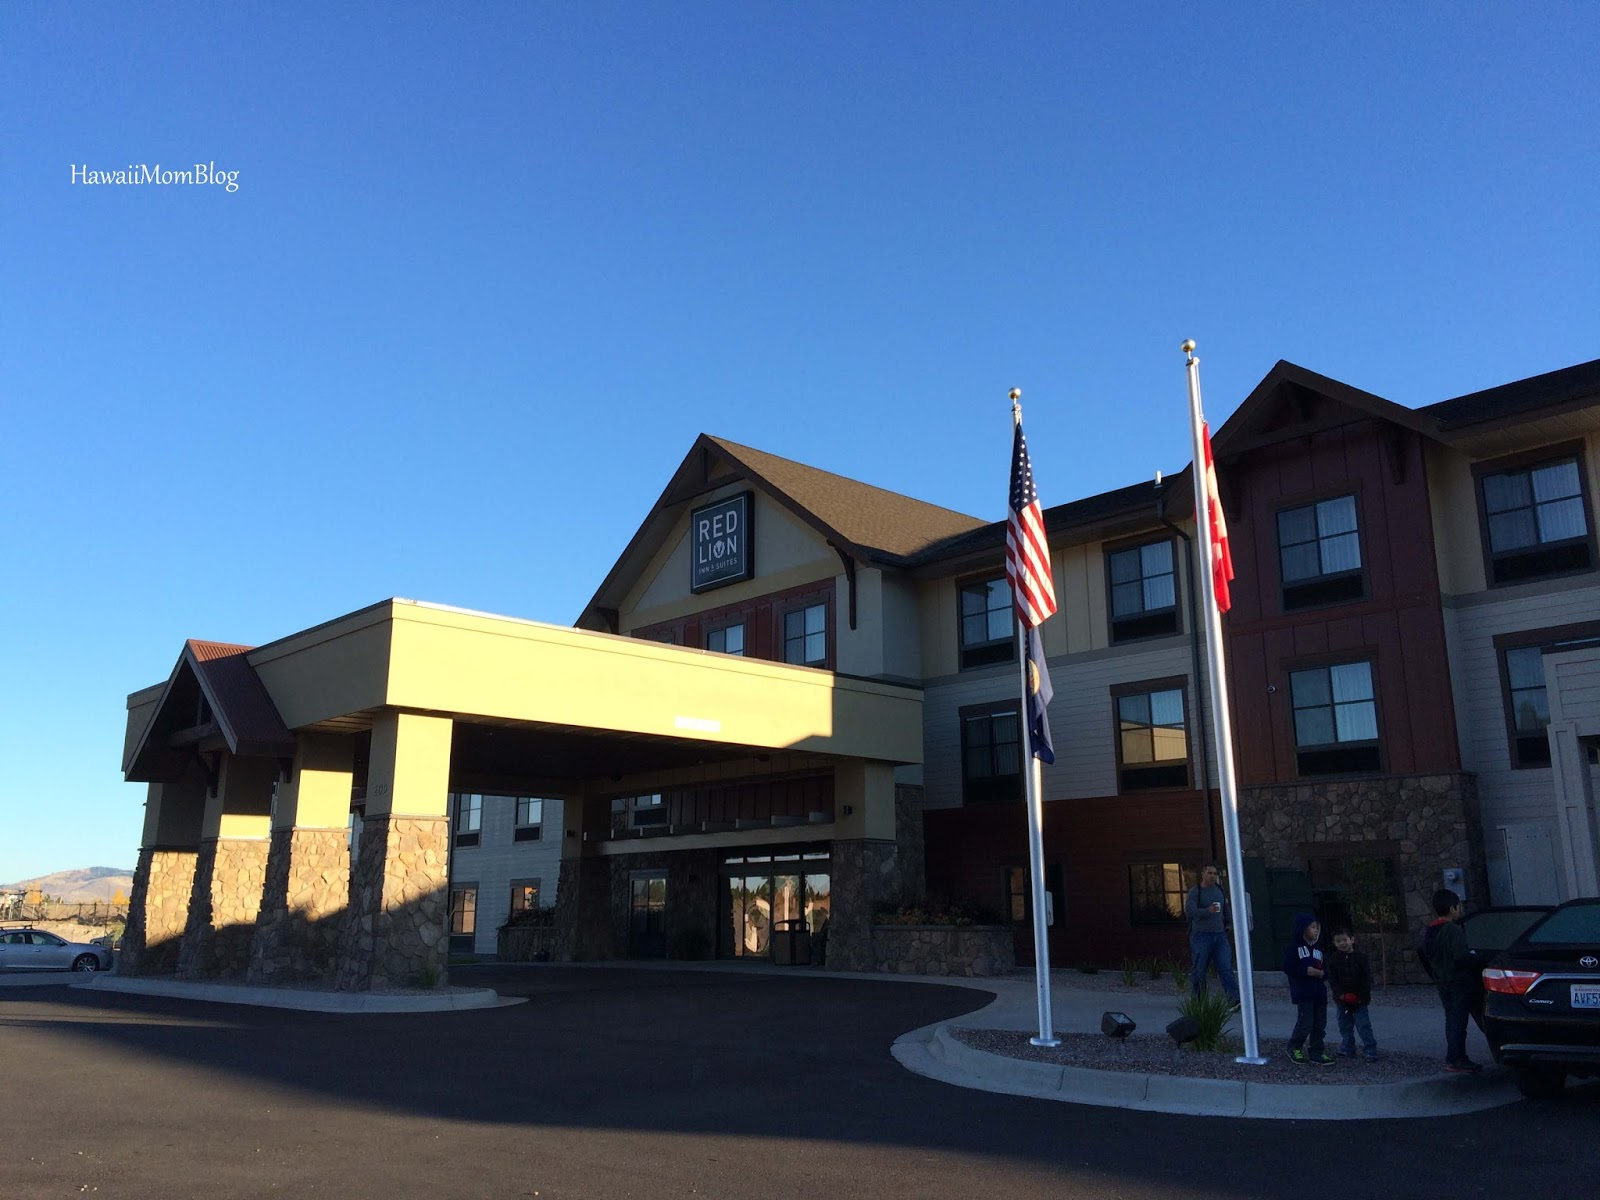 Northwest Took Us From Washington To Montana Where For Two Nights We Called The Red Lion Ridgewater Inn And Suites Polson Our Home Away